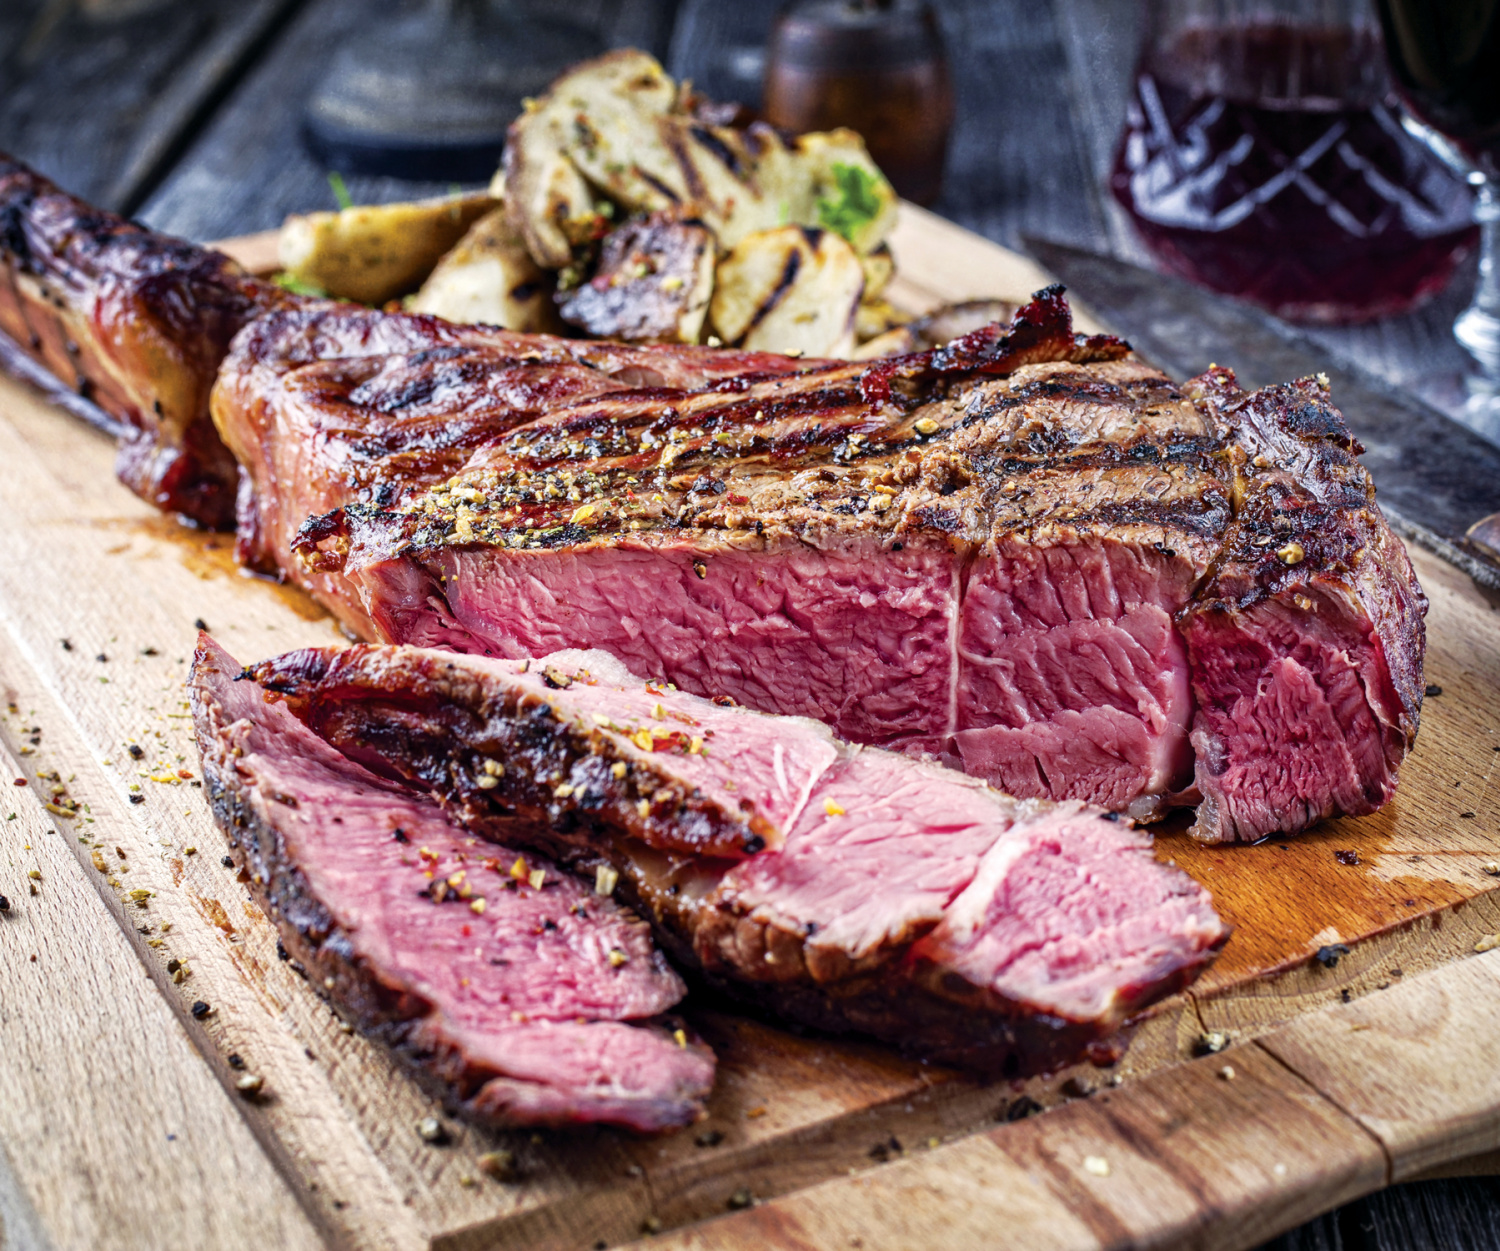 A juicy piece of steak | Cooking the perfect steak according to Damien Cochez of Côte de Boeuf